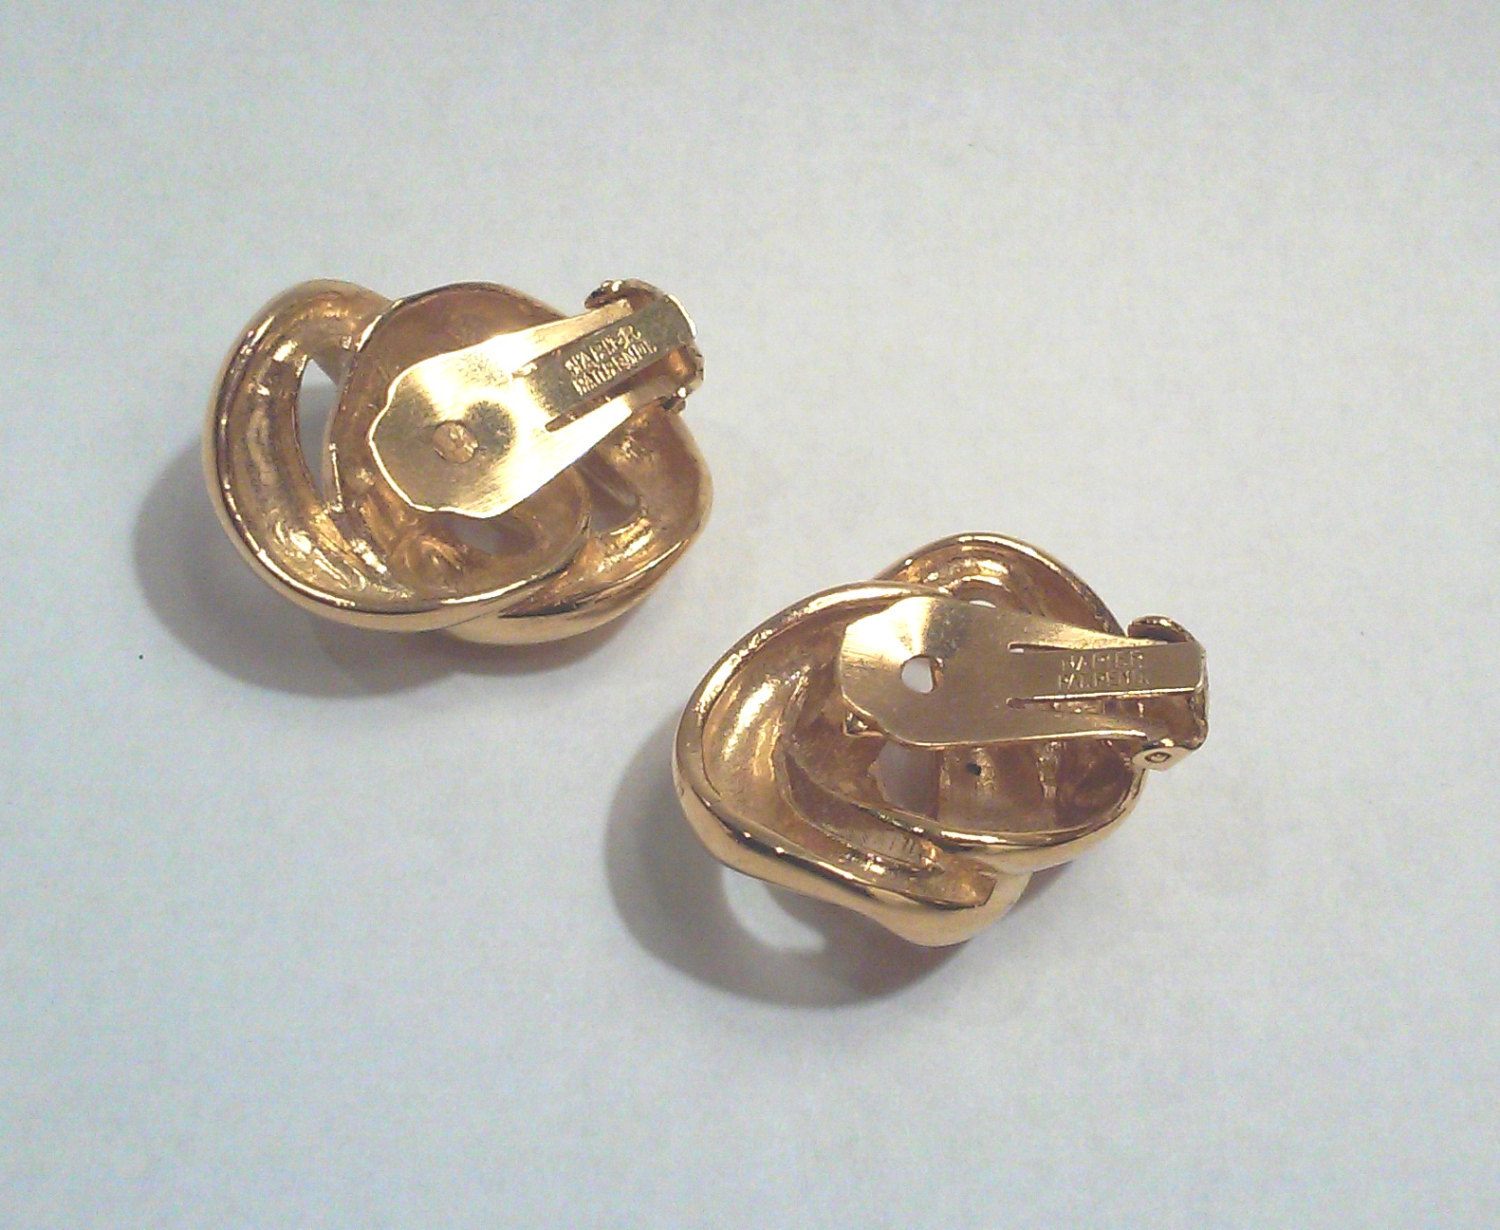 Vintage Napier Modernist Chain Link Gold-tone Clip On Earrings image 3